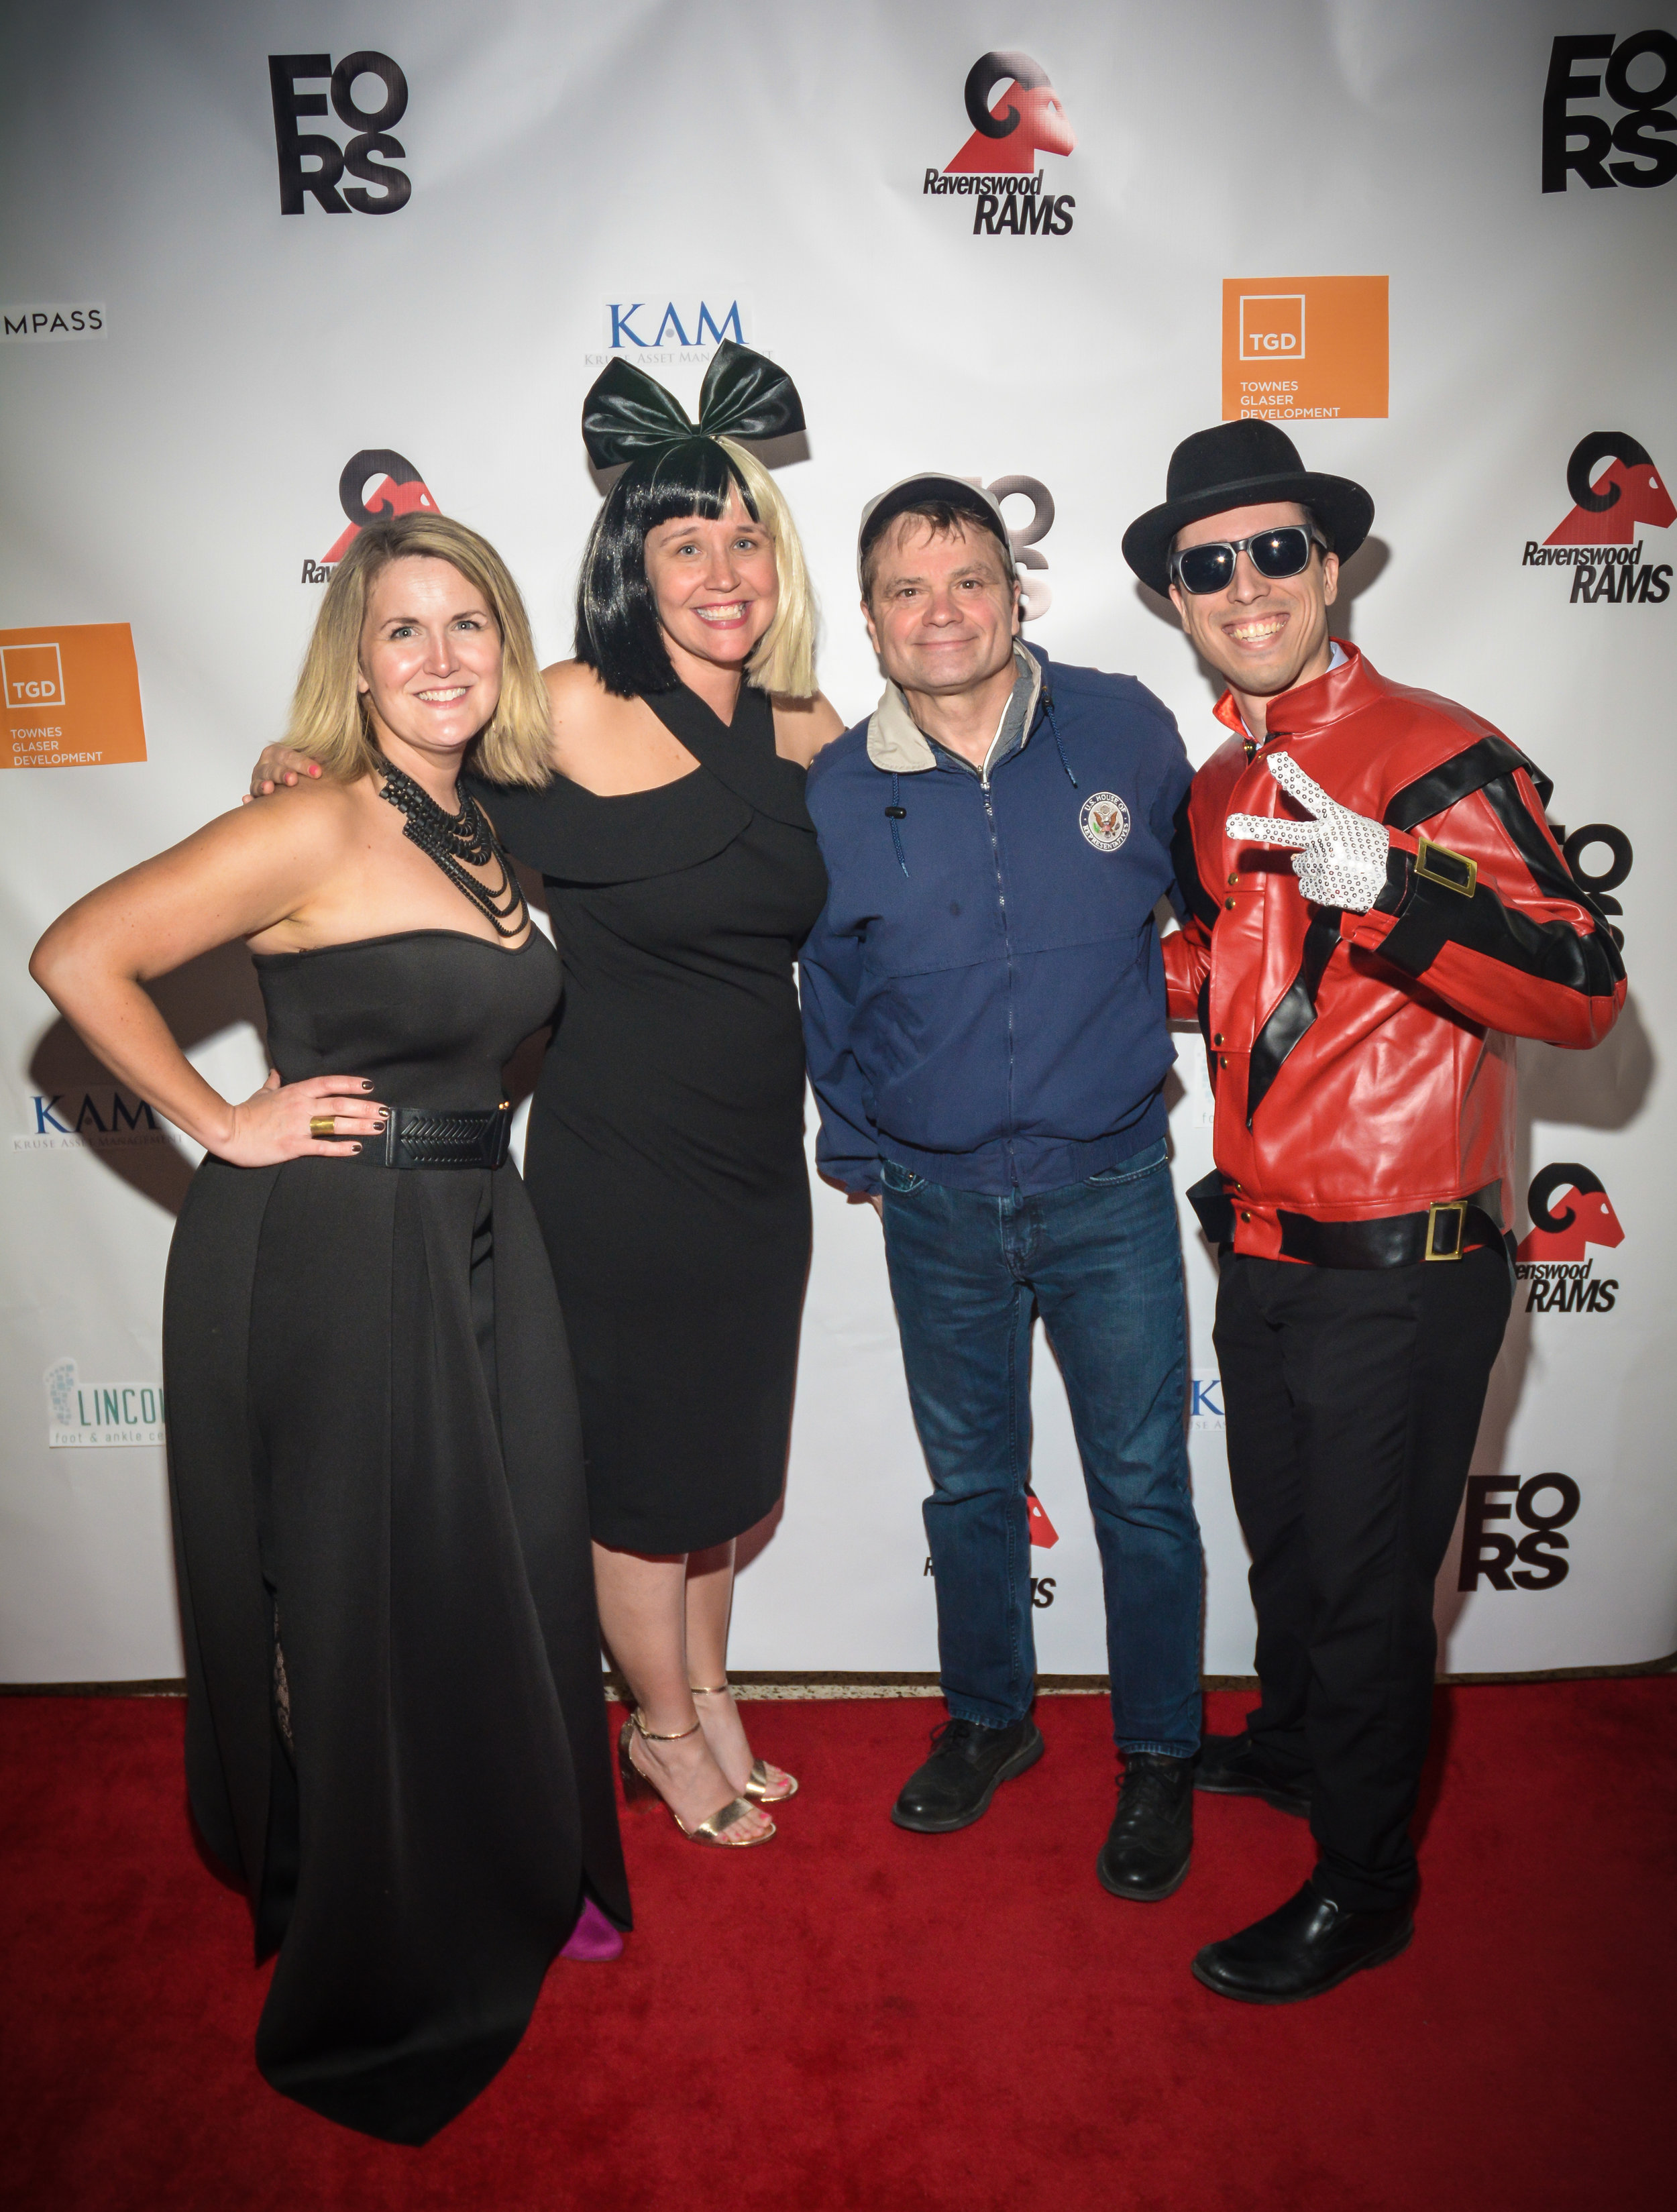 FORS co-presidents, Marta Hardacre and Mary Mesch with Congressman Mike Quigley and Principal Nate Manaen on the red carpet at the 2018 Spring Forward Benefit: Ravenswood Rocks.  Photo by Manuel Ortiz.